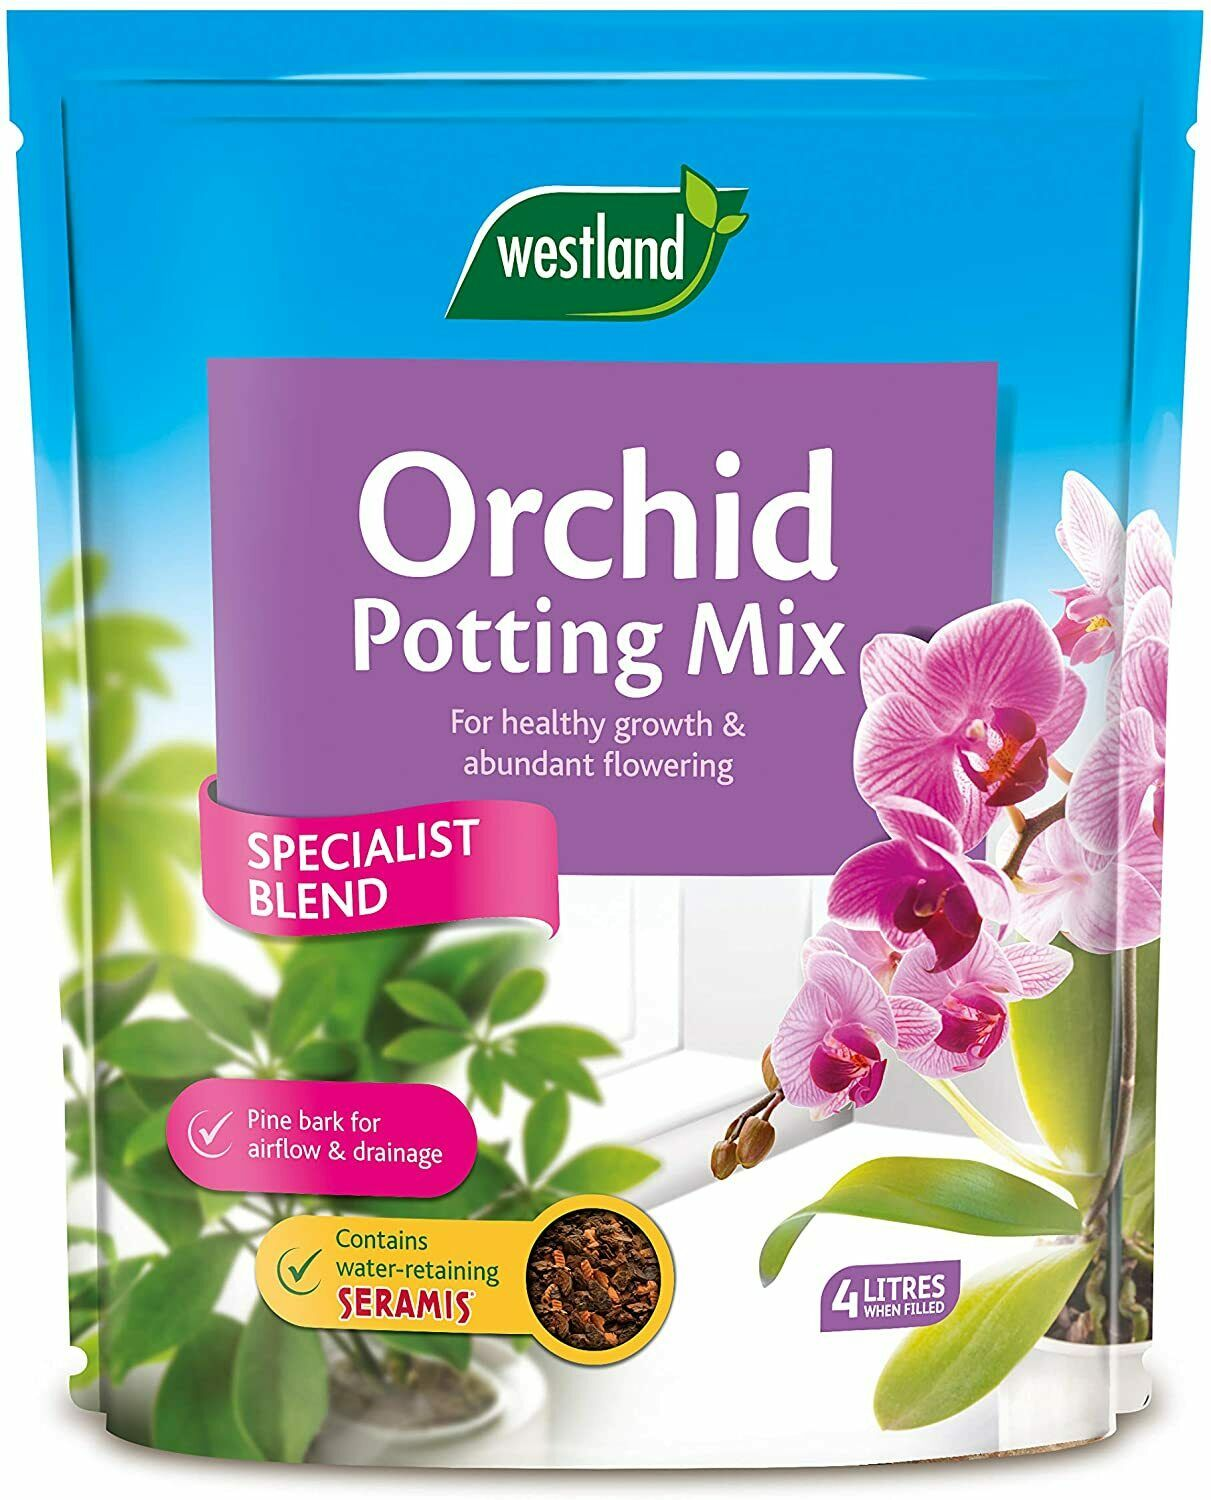 Westland Orchid Potting Compost Mix and Enriched with Seramis, 4 L*